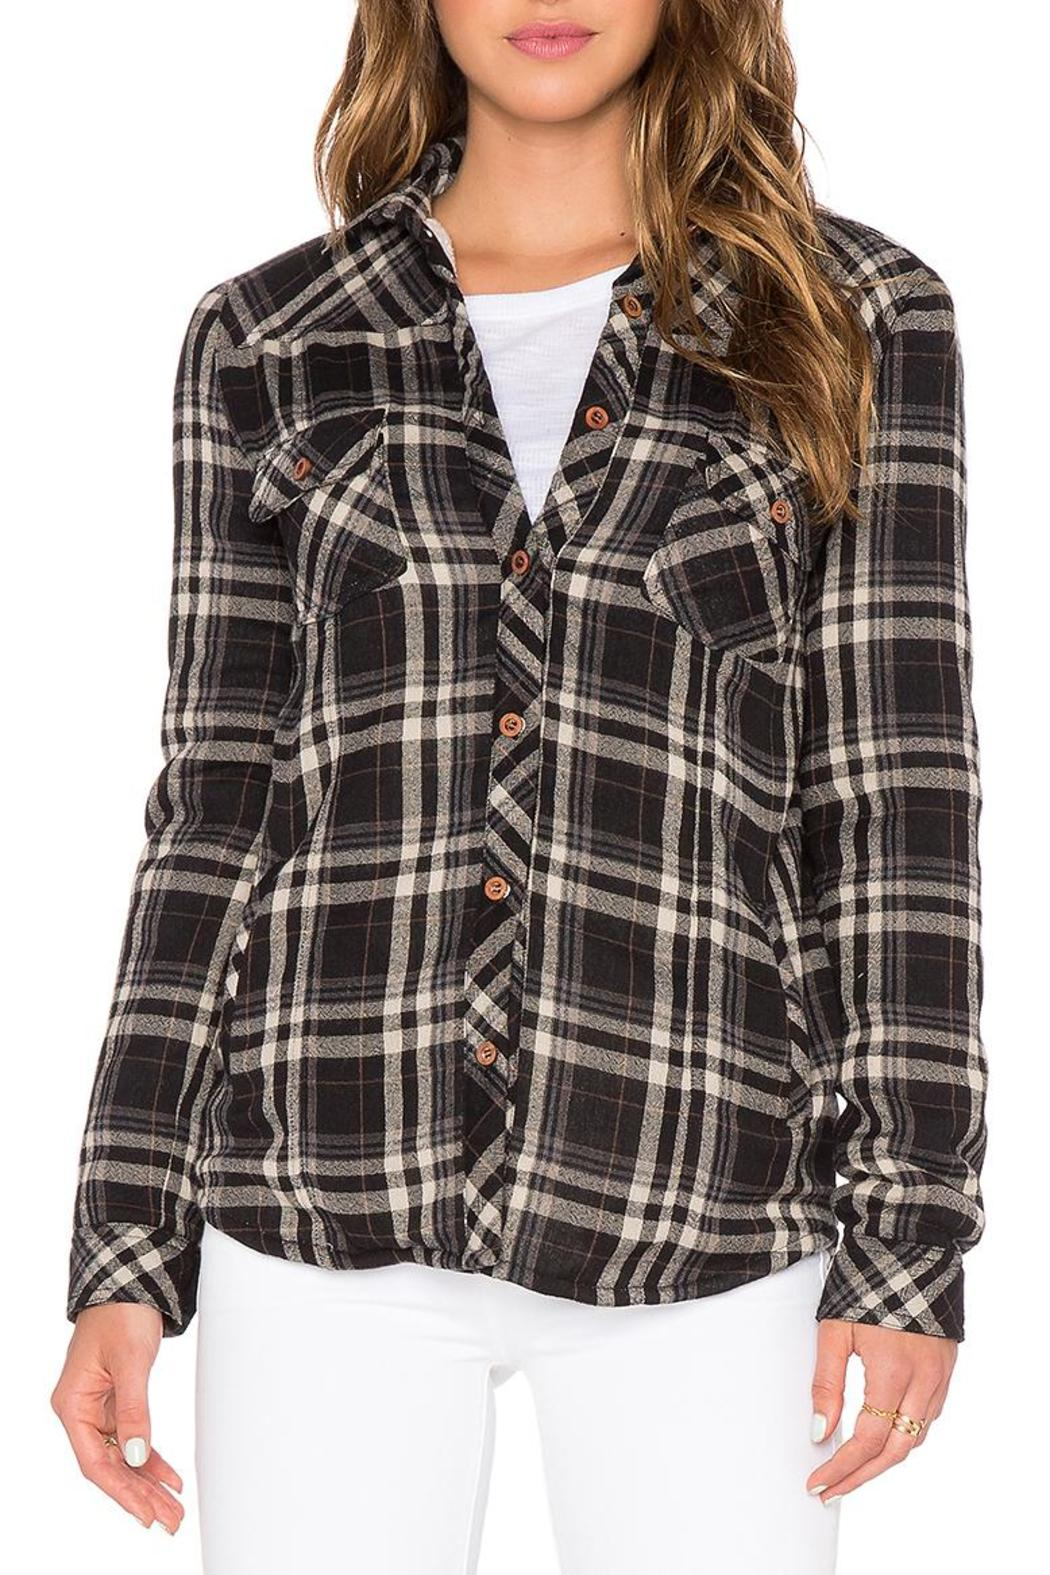 d.RA Fleece Lined Button-Up - Front Full Image